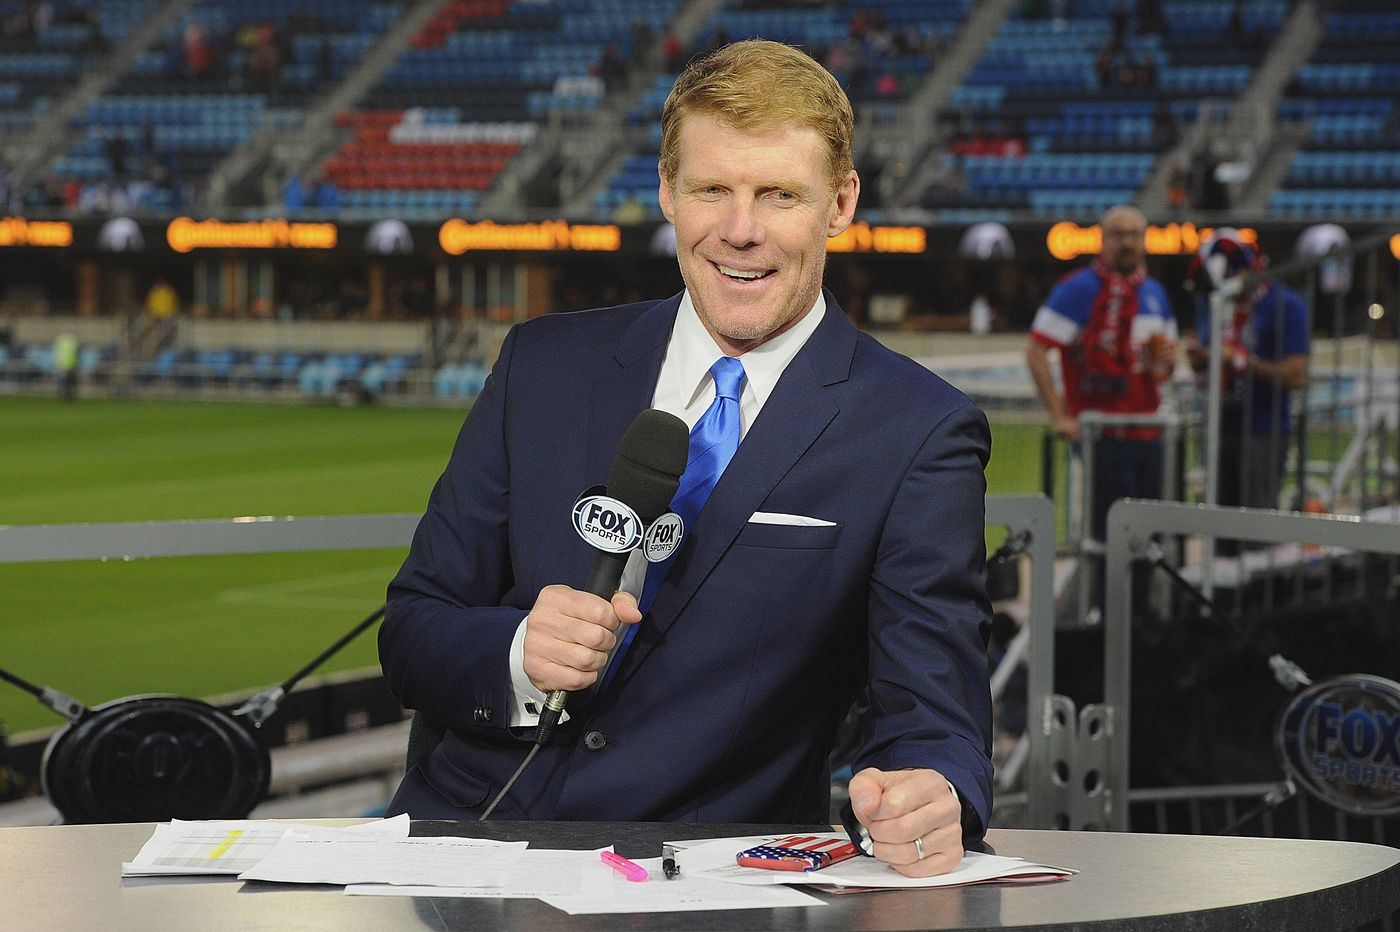 Alexi Lalas: Gregg Berhalter is 'eminently qualified' to be USMNT coach